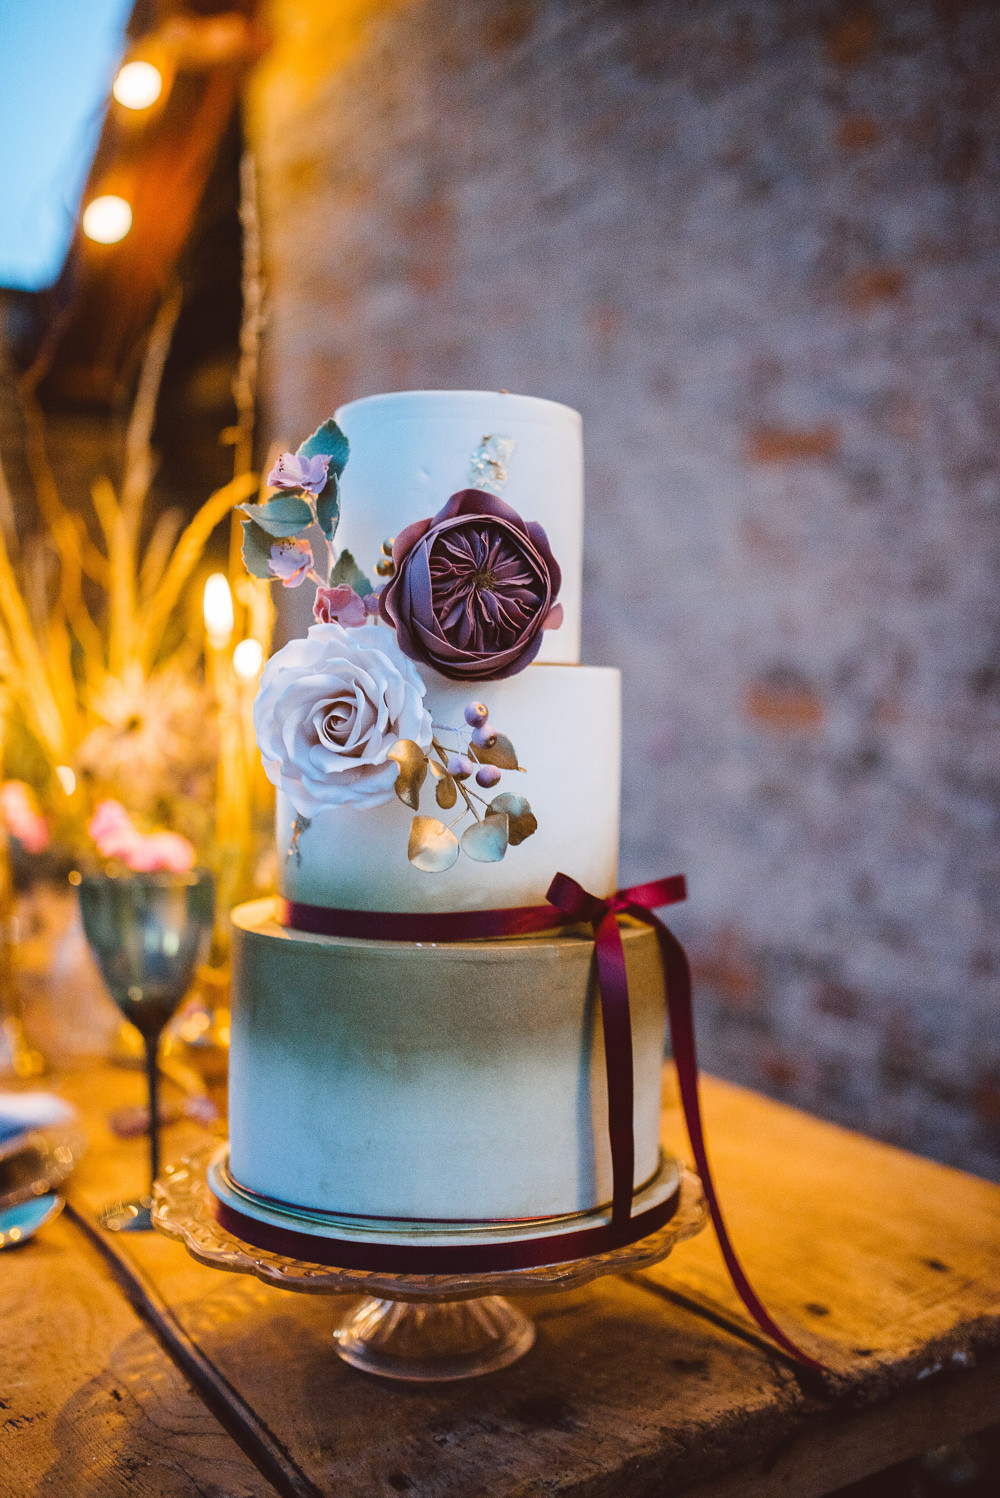 Burgundy Purple Cake Ribbon Flower Tier Ethereal Magical Golden Hour Wedding Ideas Dhw Photography